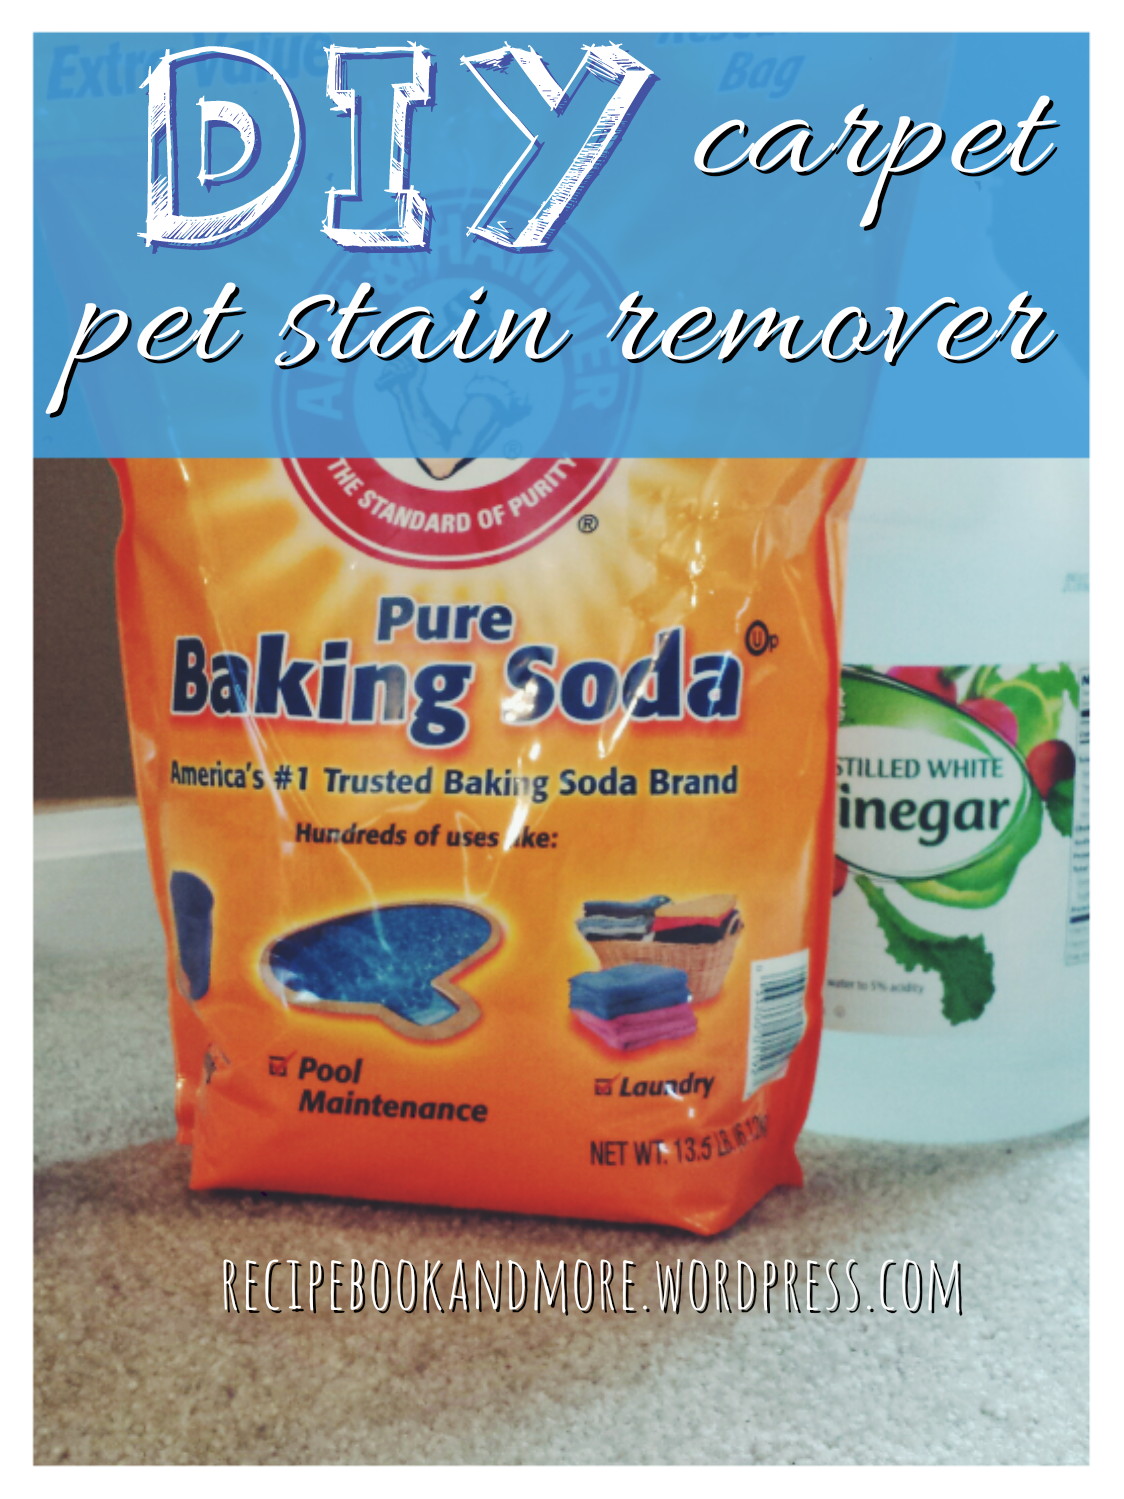 Here S An All Natural Recipe To Remove Pet Stains From Carpet It Just 2 Ings That You Already Have Baking Soda And Vinegar